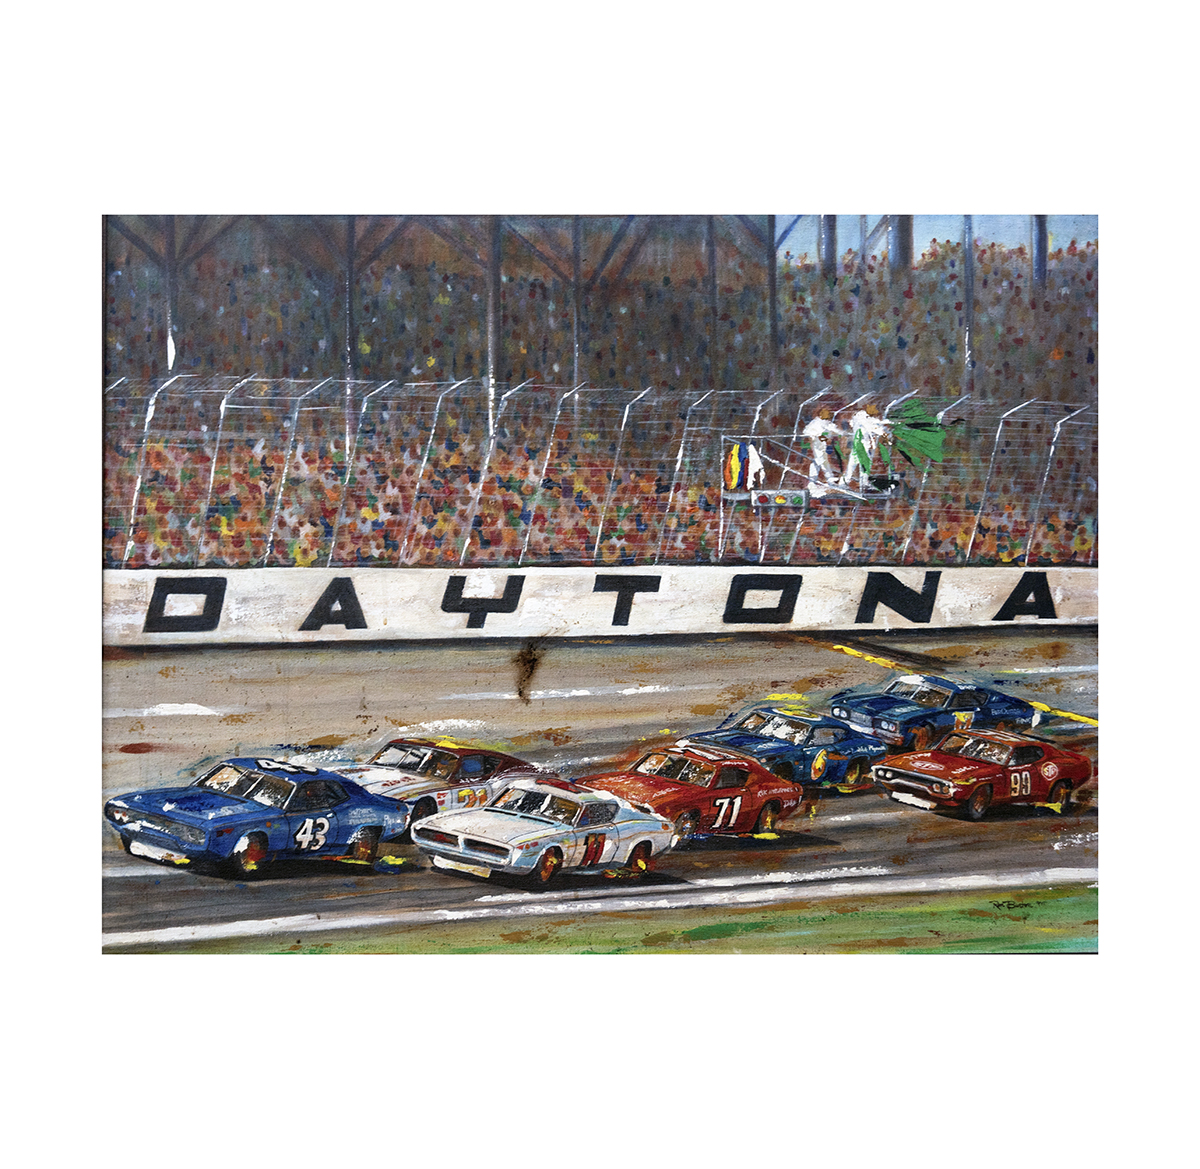 1971 Richard Petty Third Daytona 500 Win Original Ron Burton Artwork Racing Hall Of Fame Collection